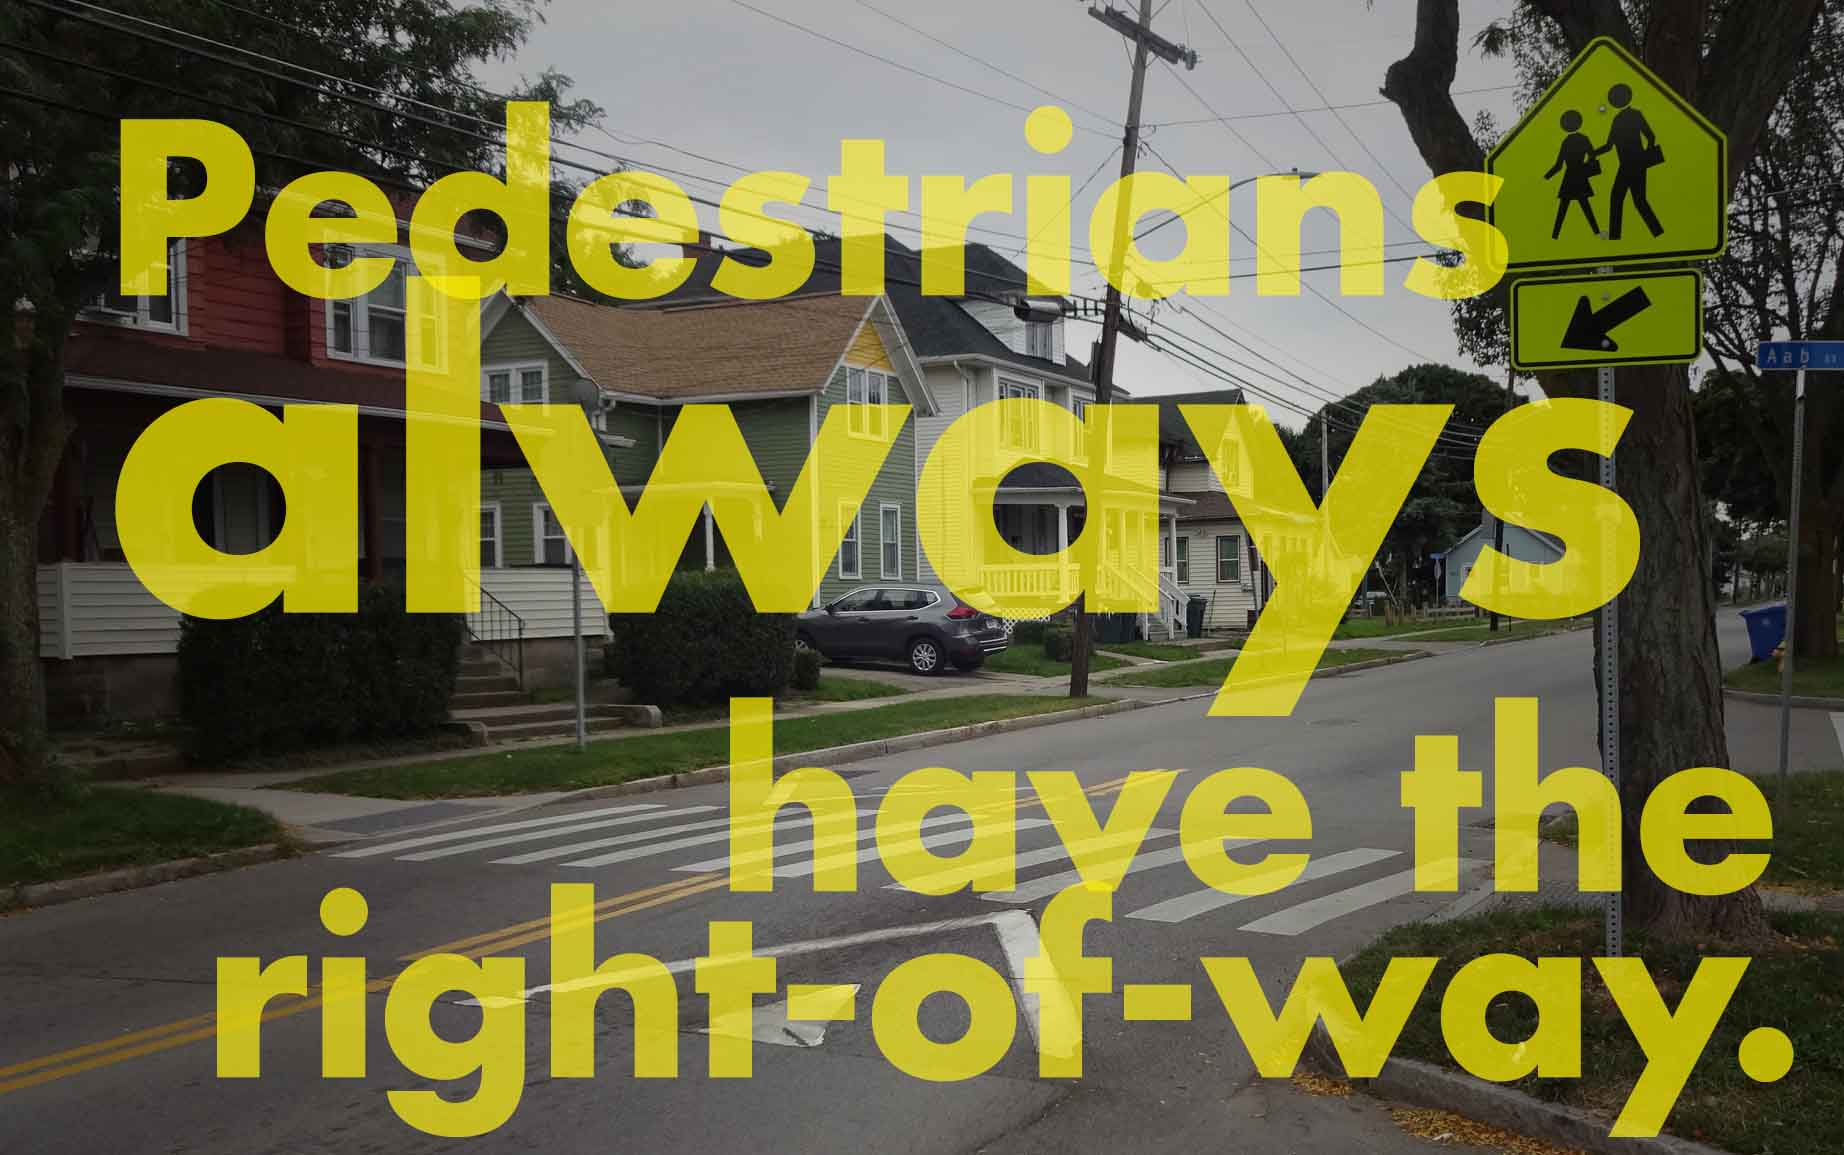 pedestrians always have the right-of-way.jpg